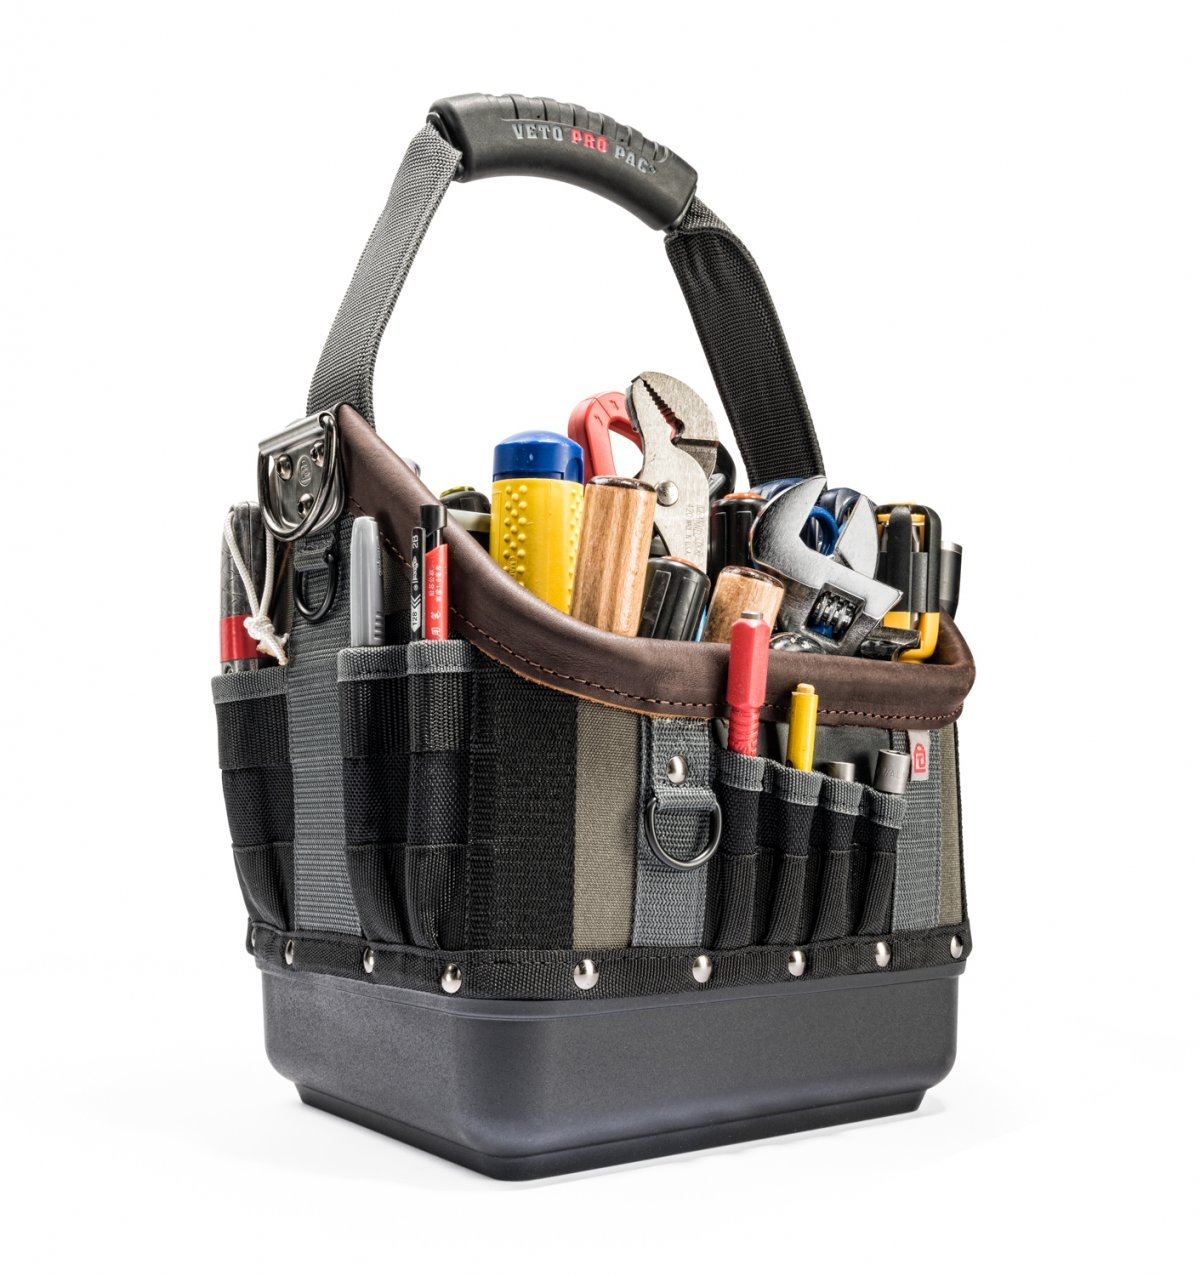 TECHOT-MC Veto COMPACT Open Top Tool Bag